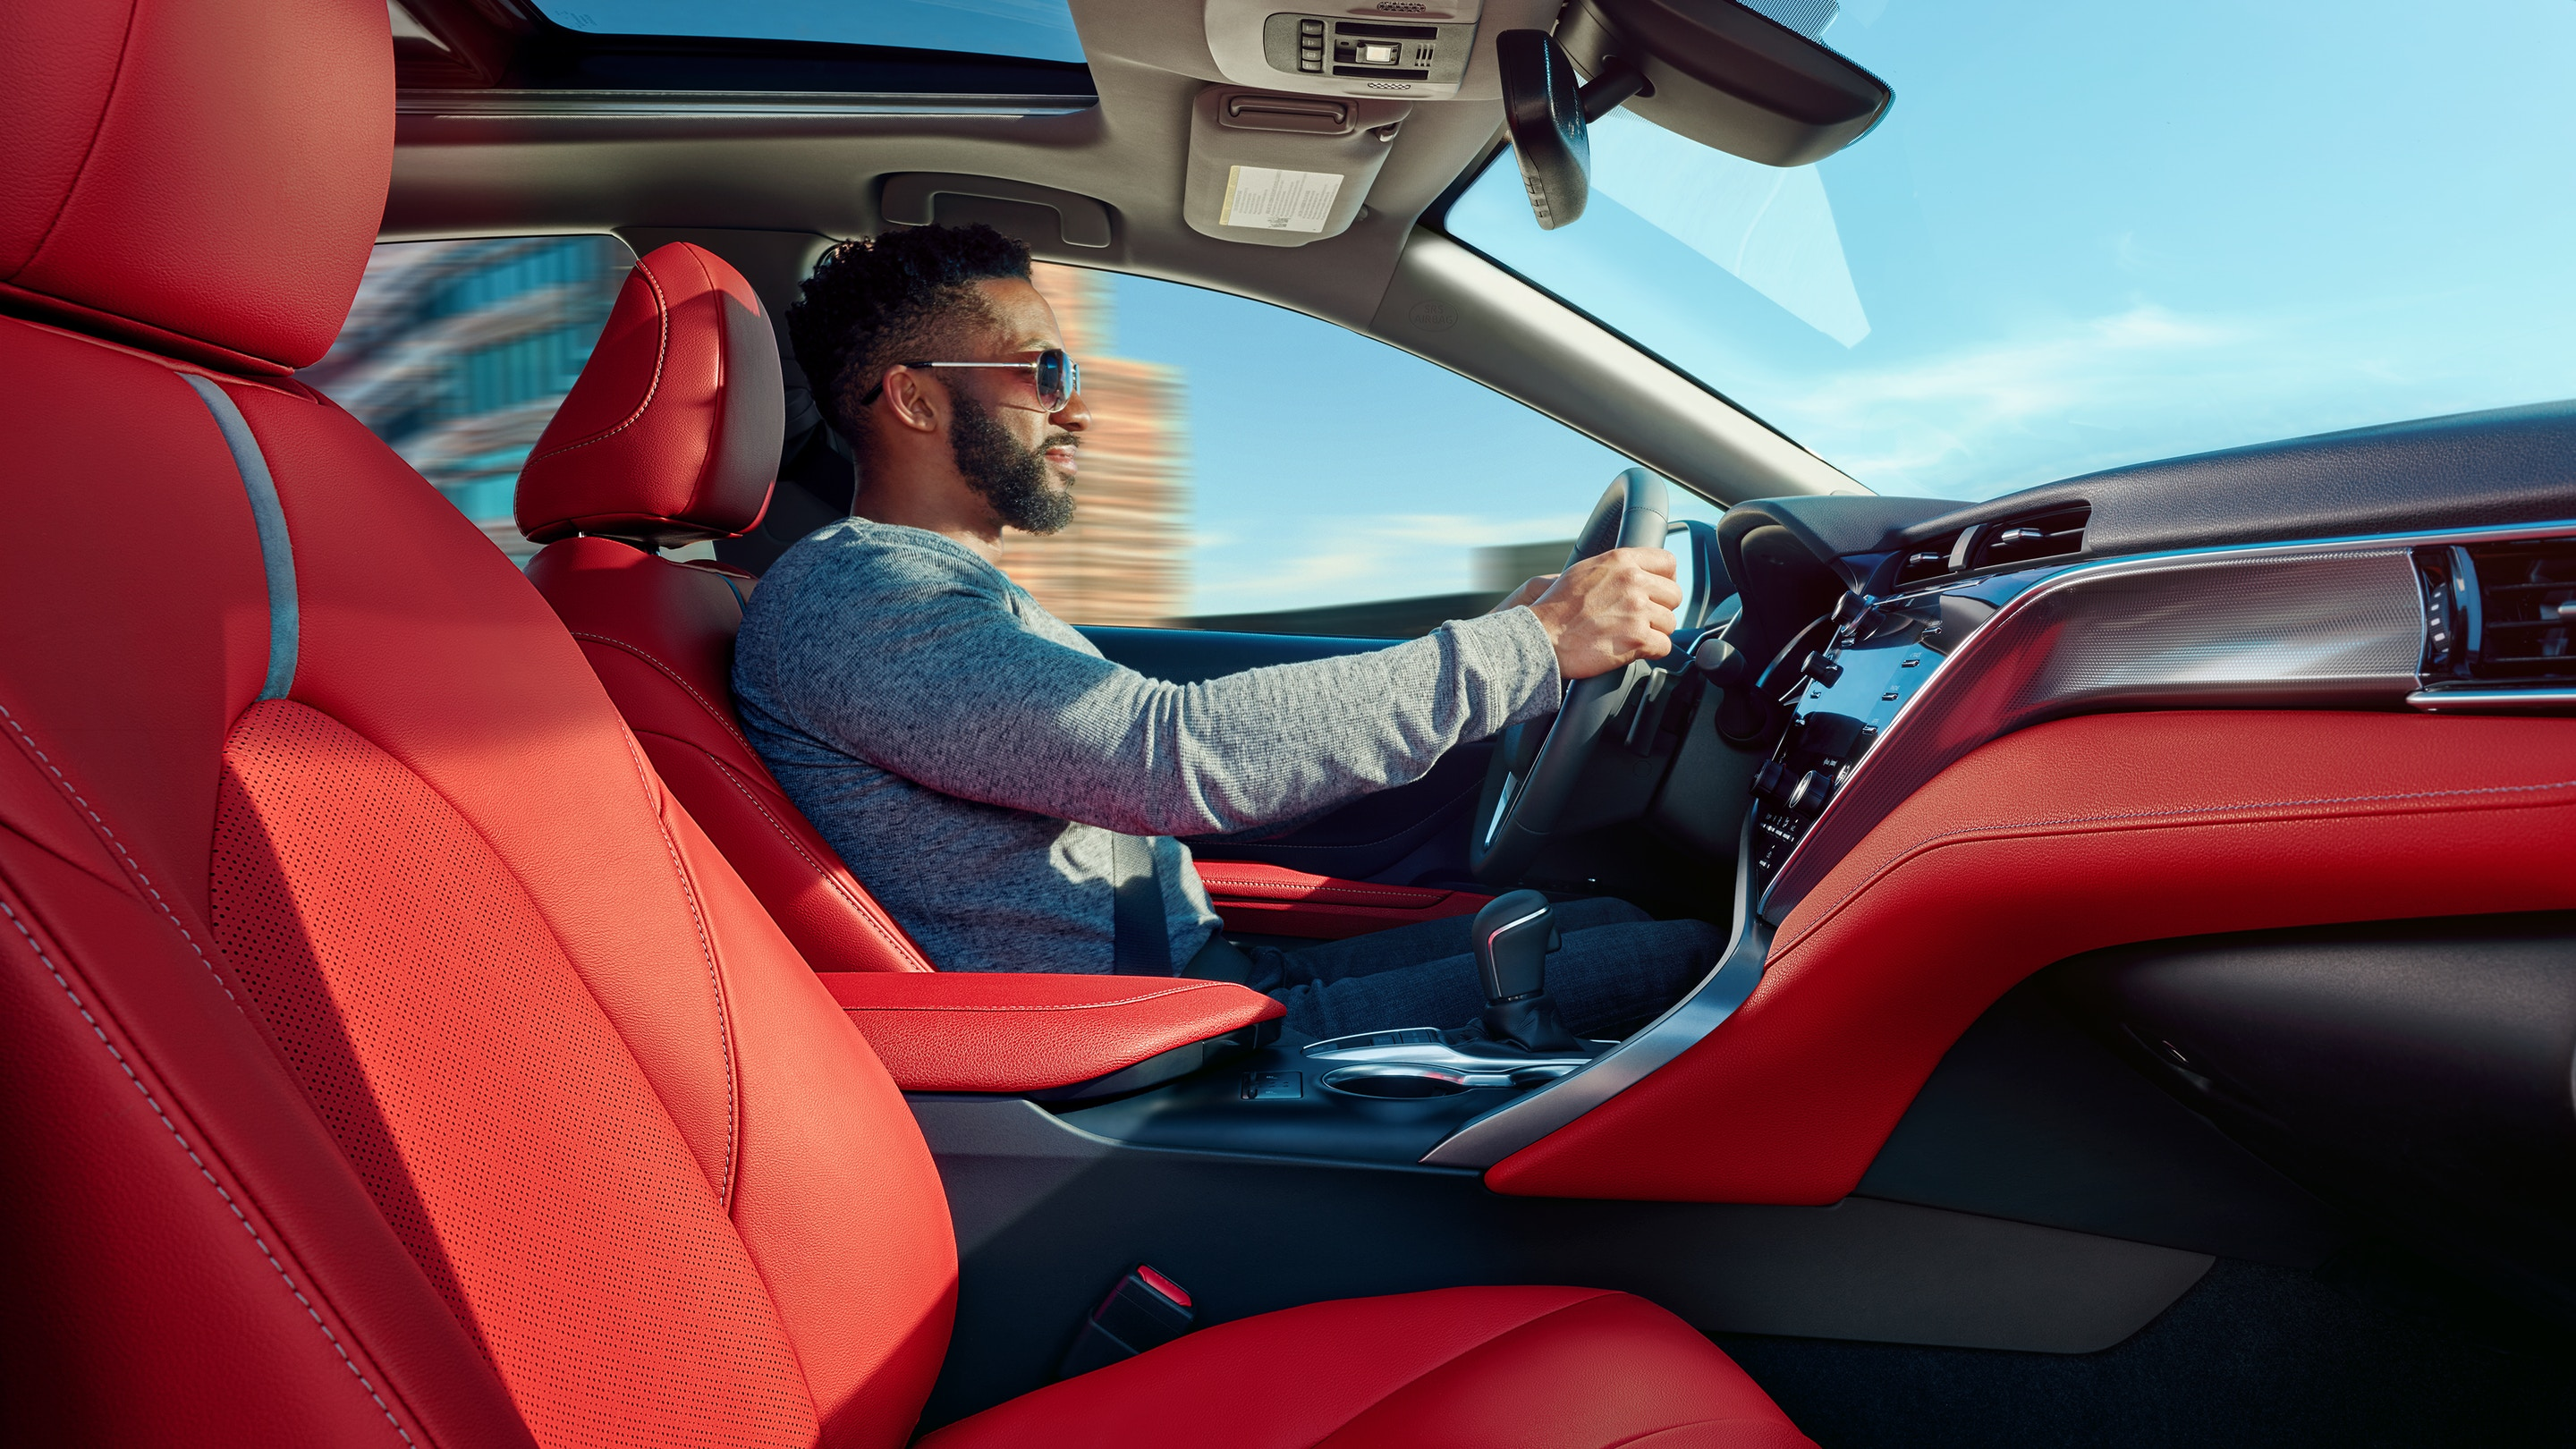 Sporty Interior of the 2020 Camry